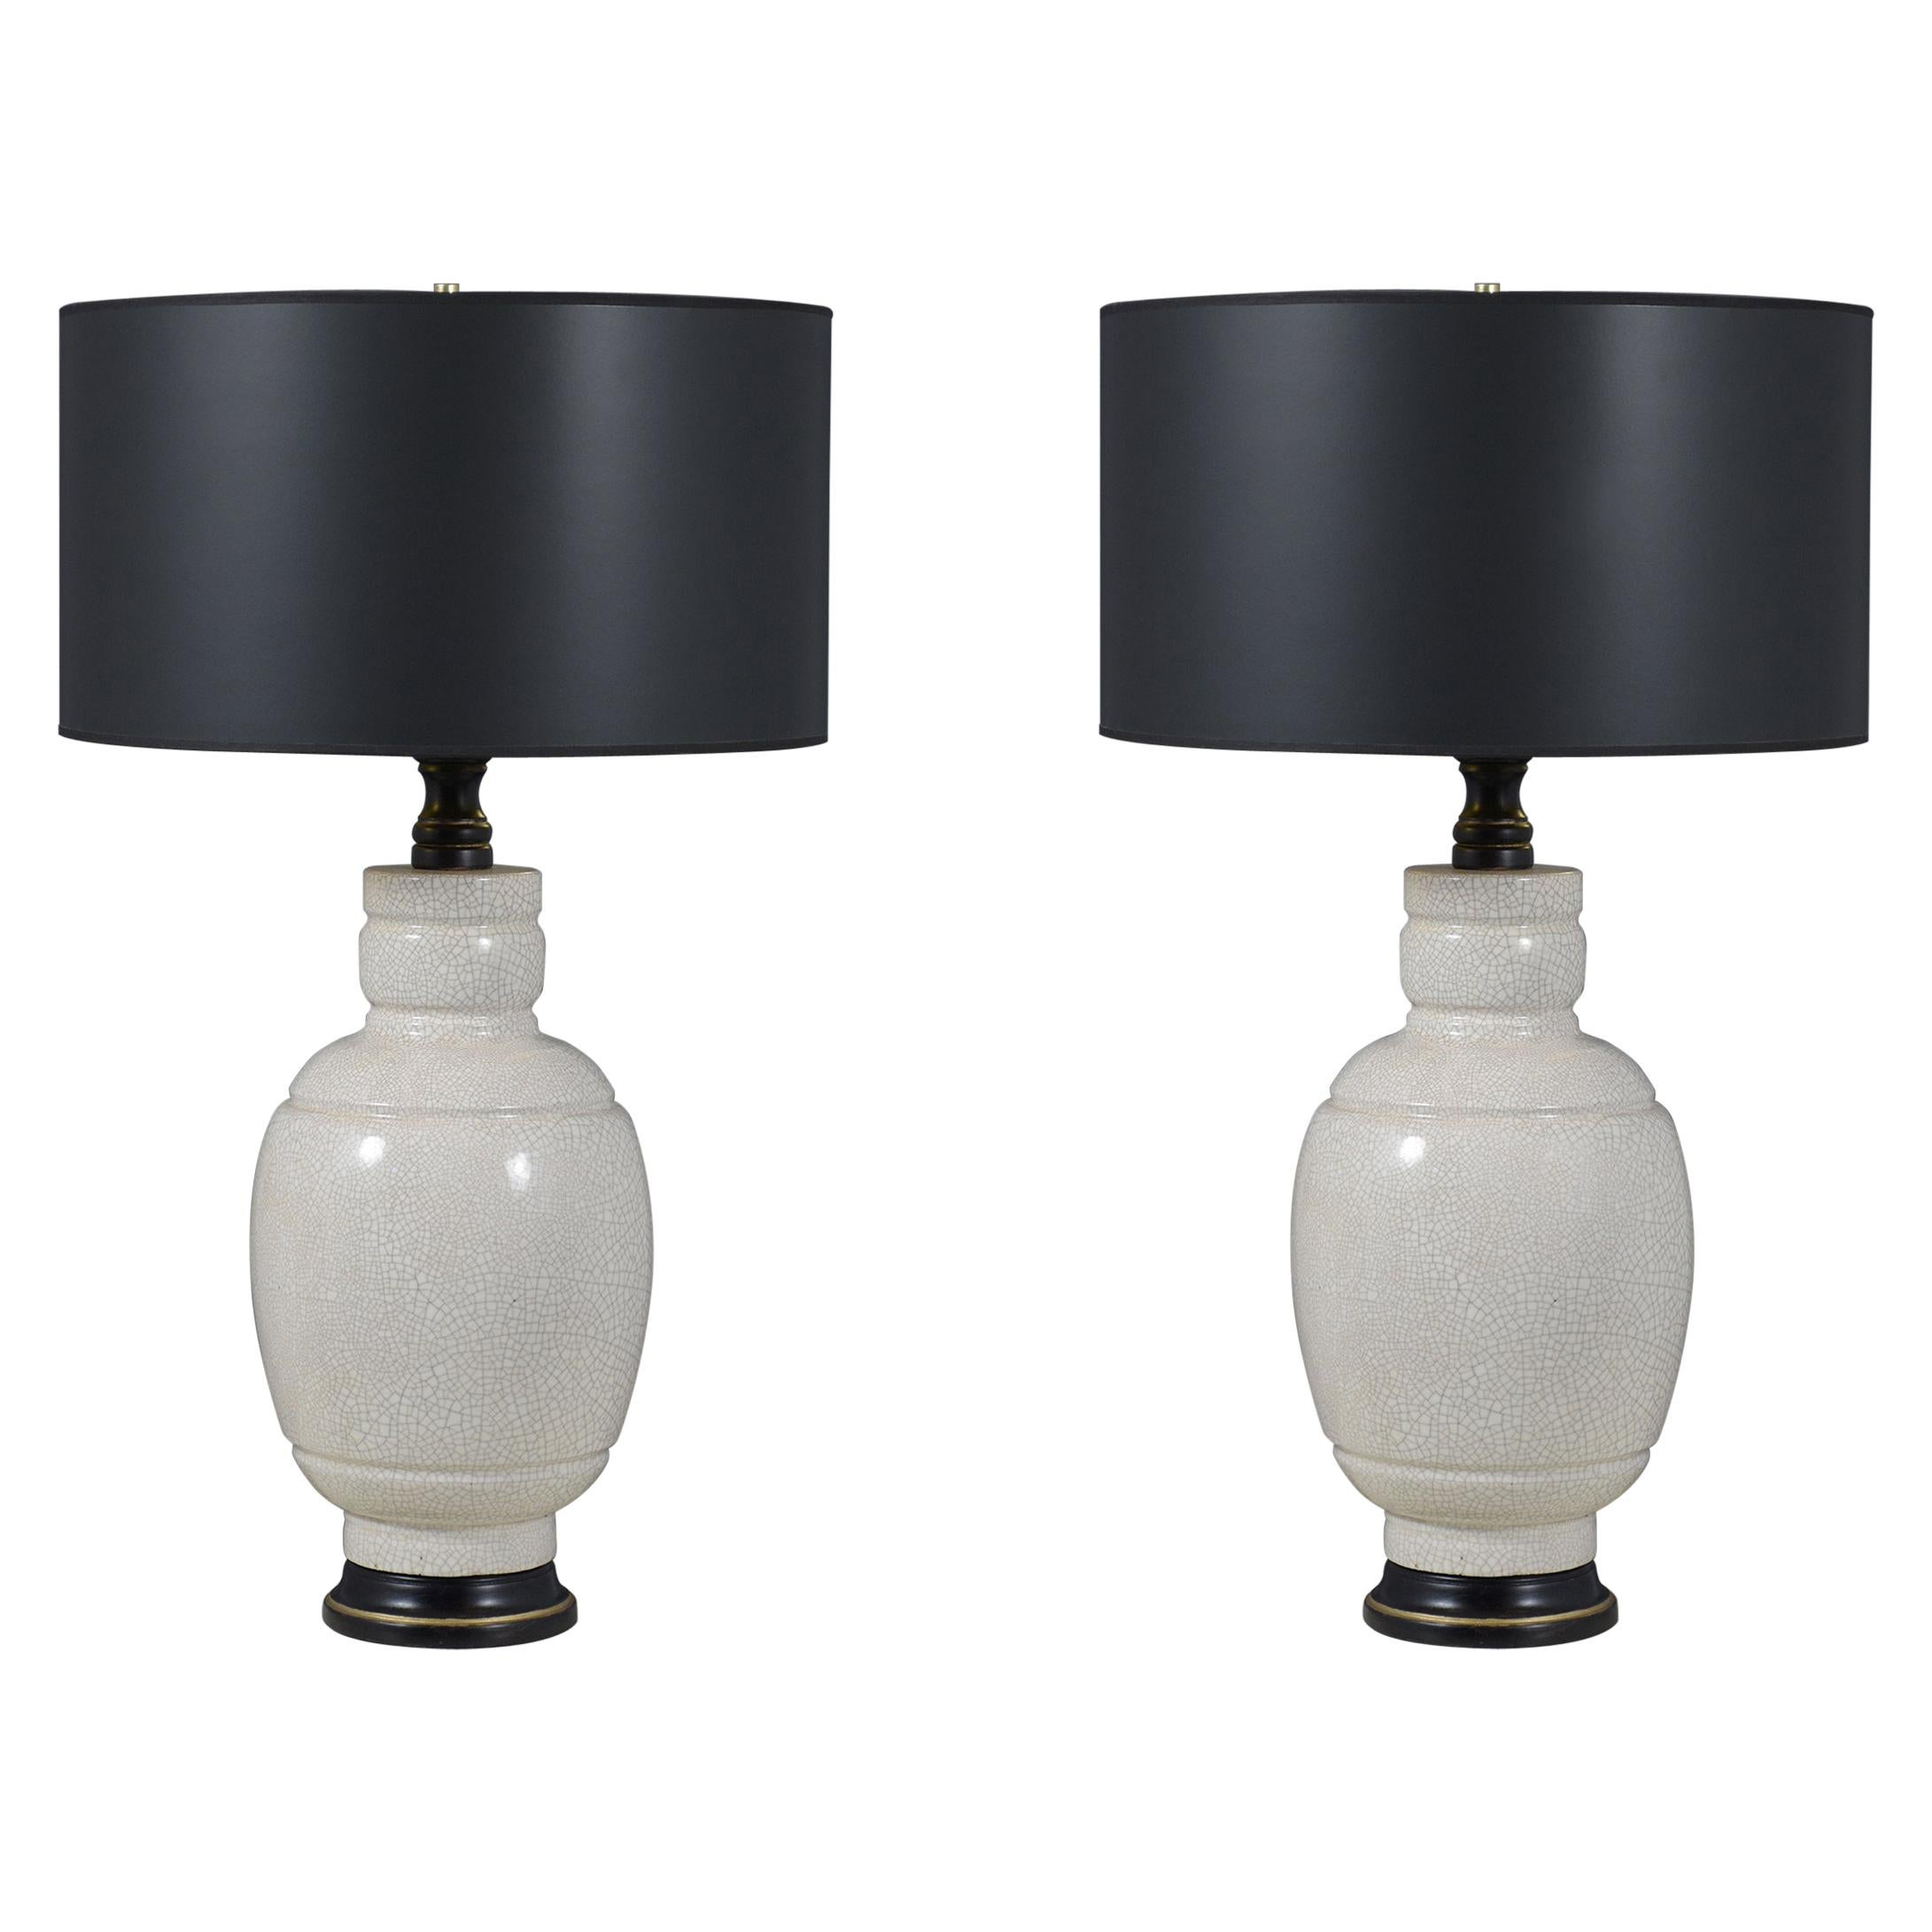 Pair of Vintage Mid-Century Ceramic Table Lamps